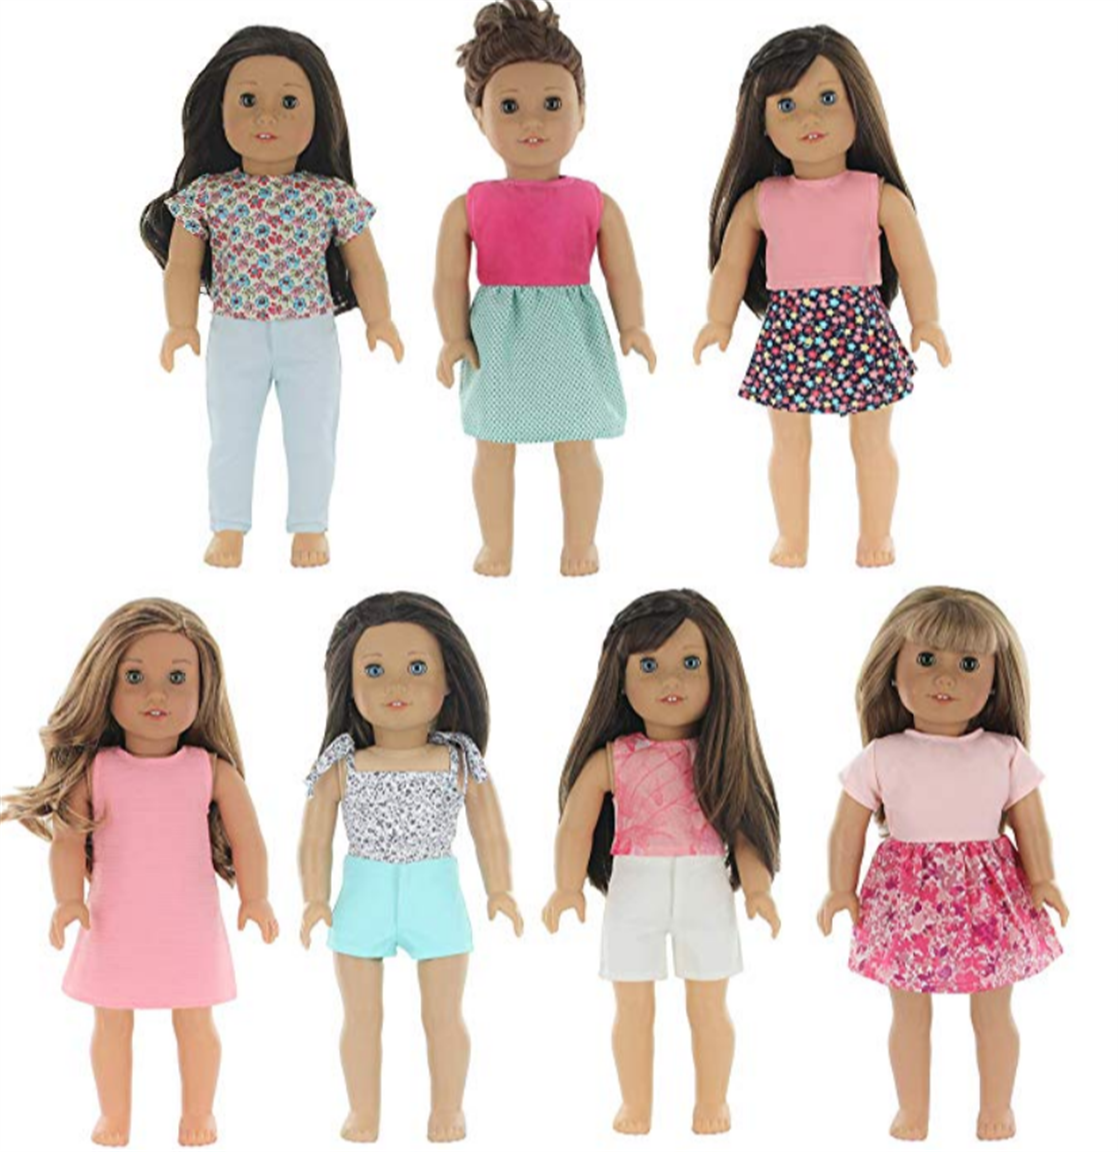 Amazon – SEVEN 18″ Doll Outfits Only $9.75 + Free Shipping! – Fits Our Generation, American Girl & More!